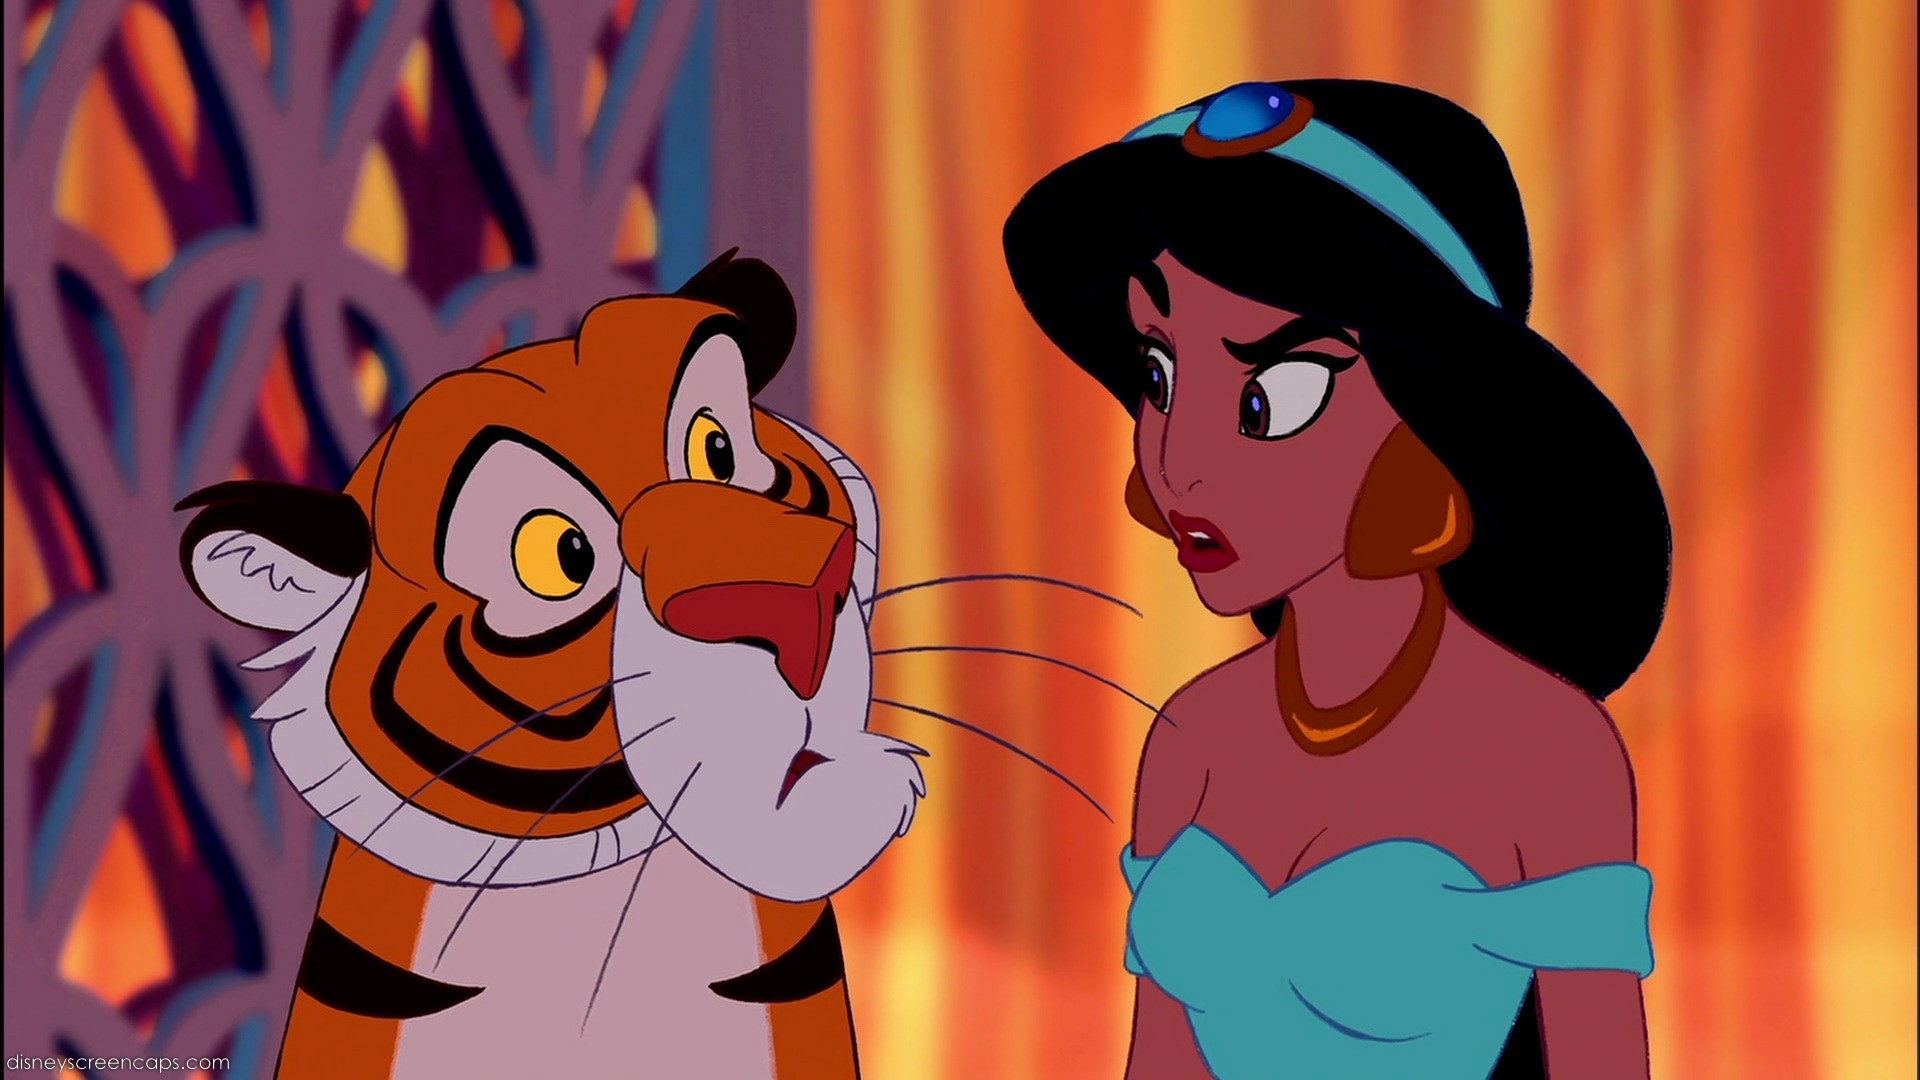 Uncategorized Aladdin Tiger tumblr disney confessions 21 which do you agree with poll results princess fanpop